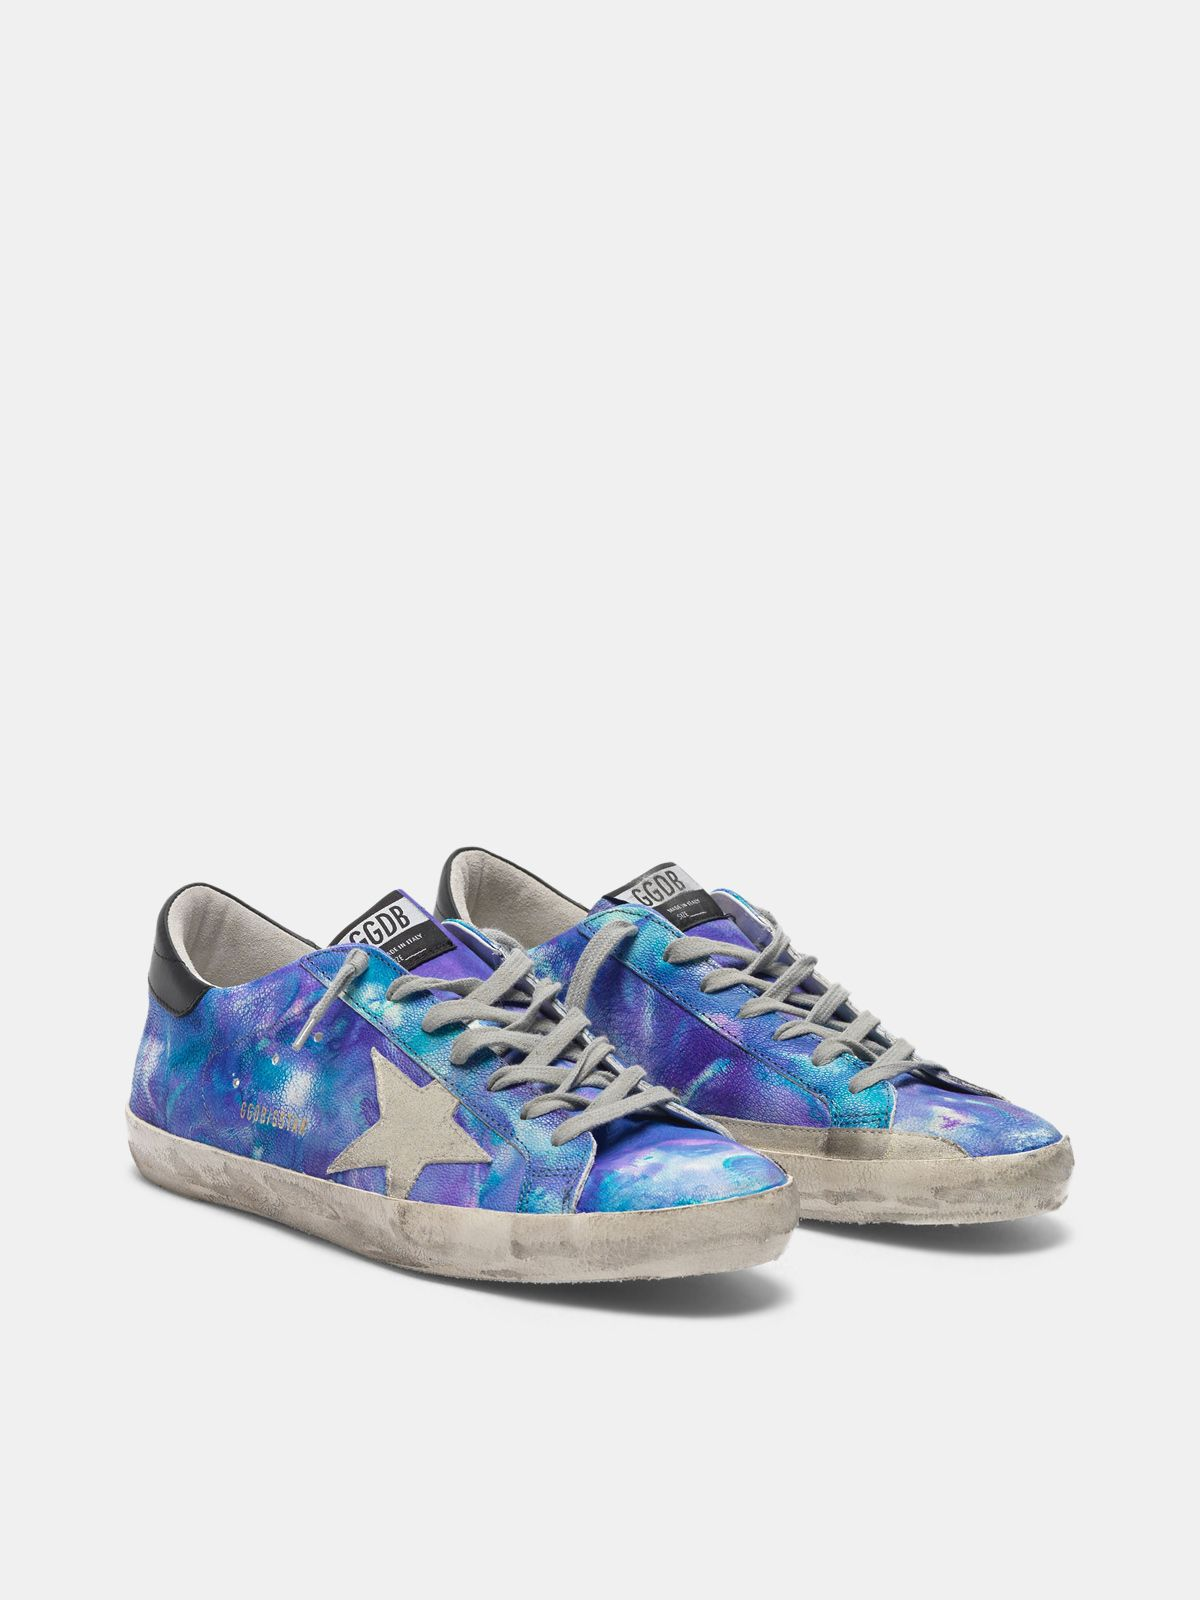 Golden Goose - Super-Star sneakers in tie-dye leather   in